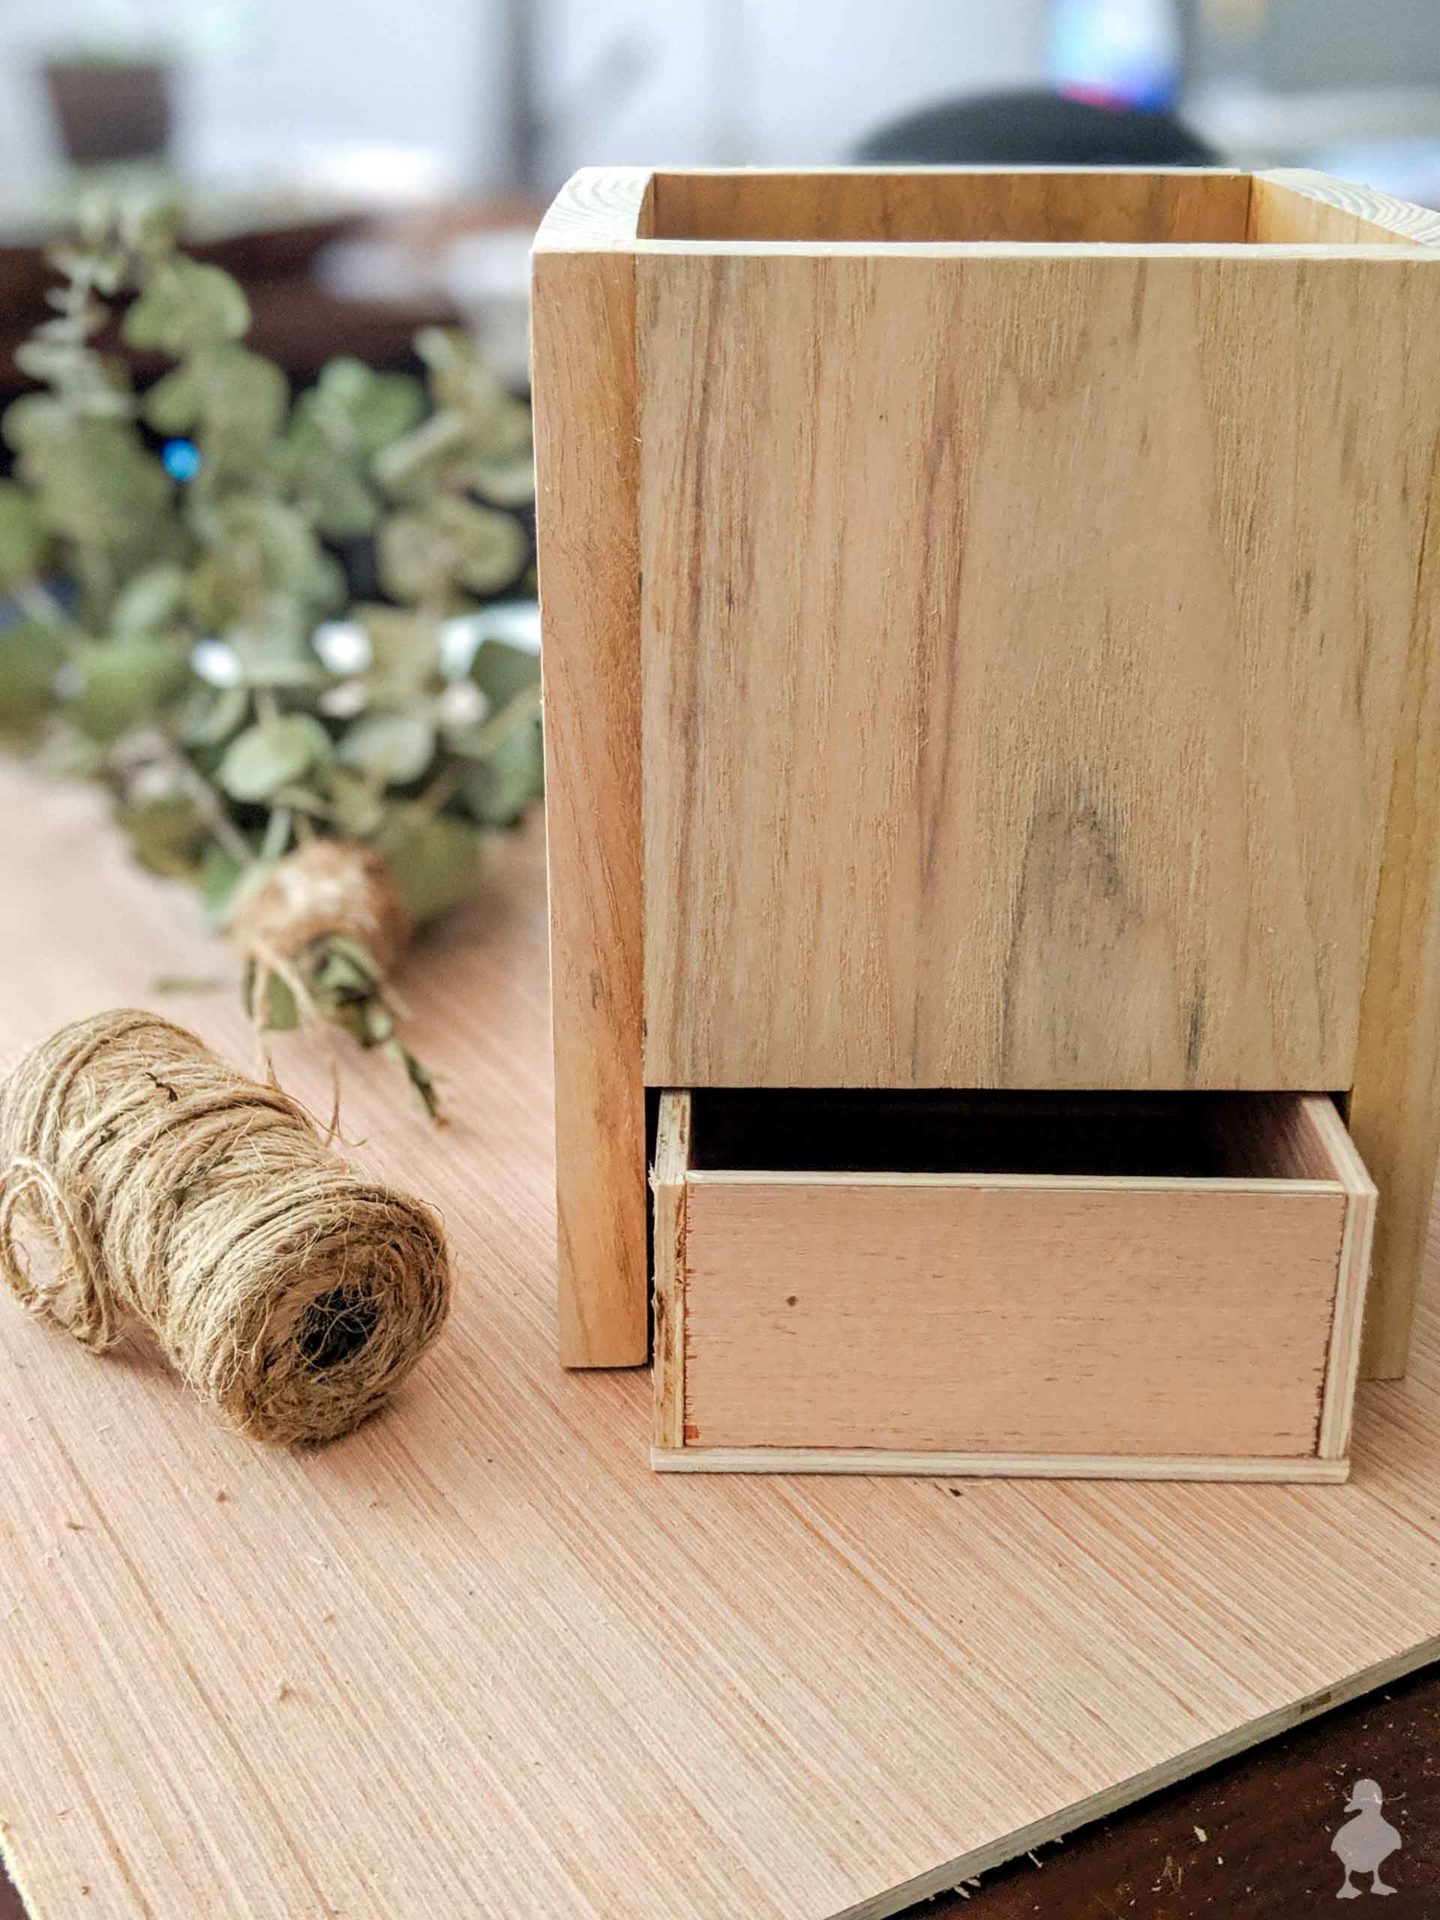 create small drawer in the back of the vase